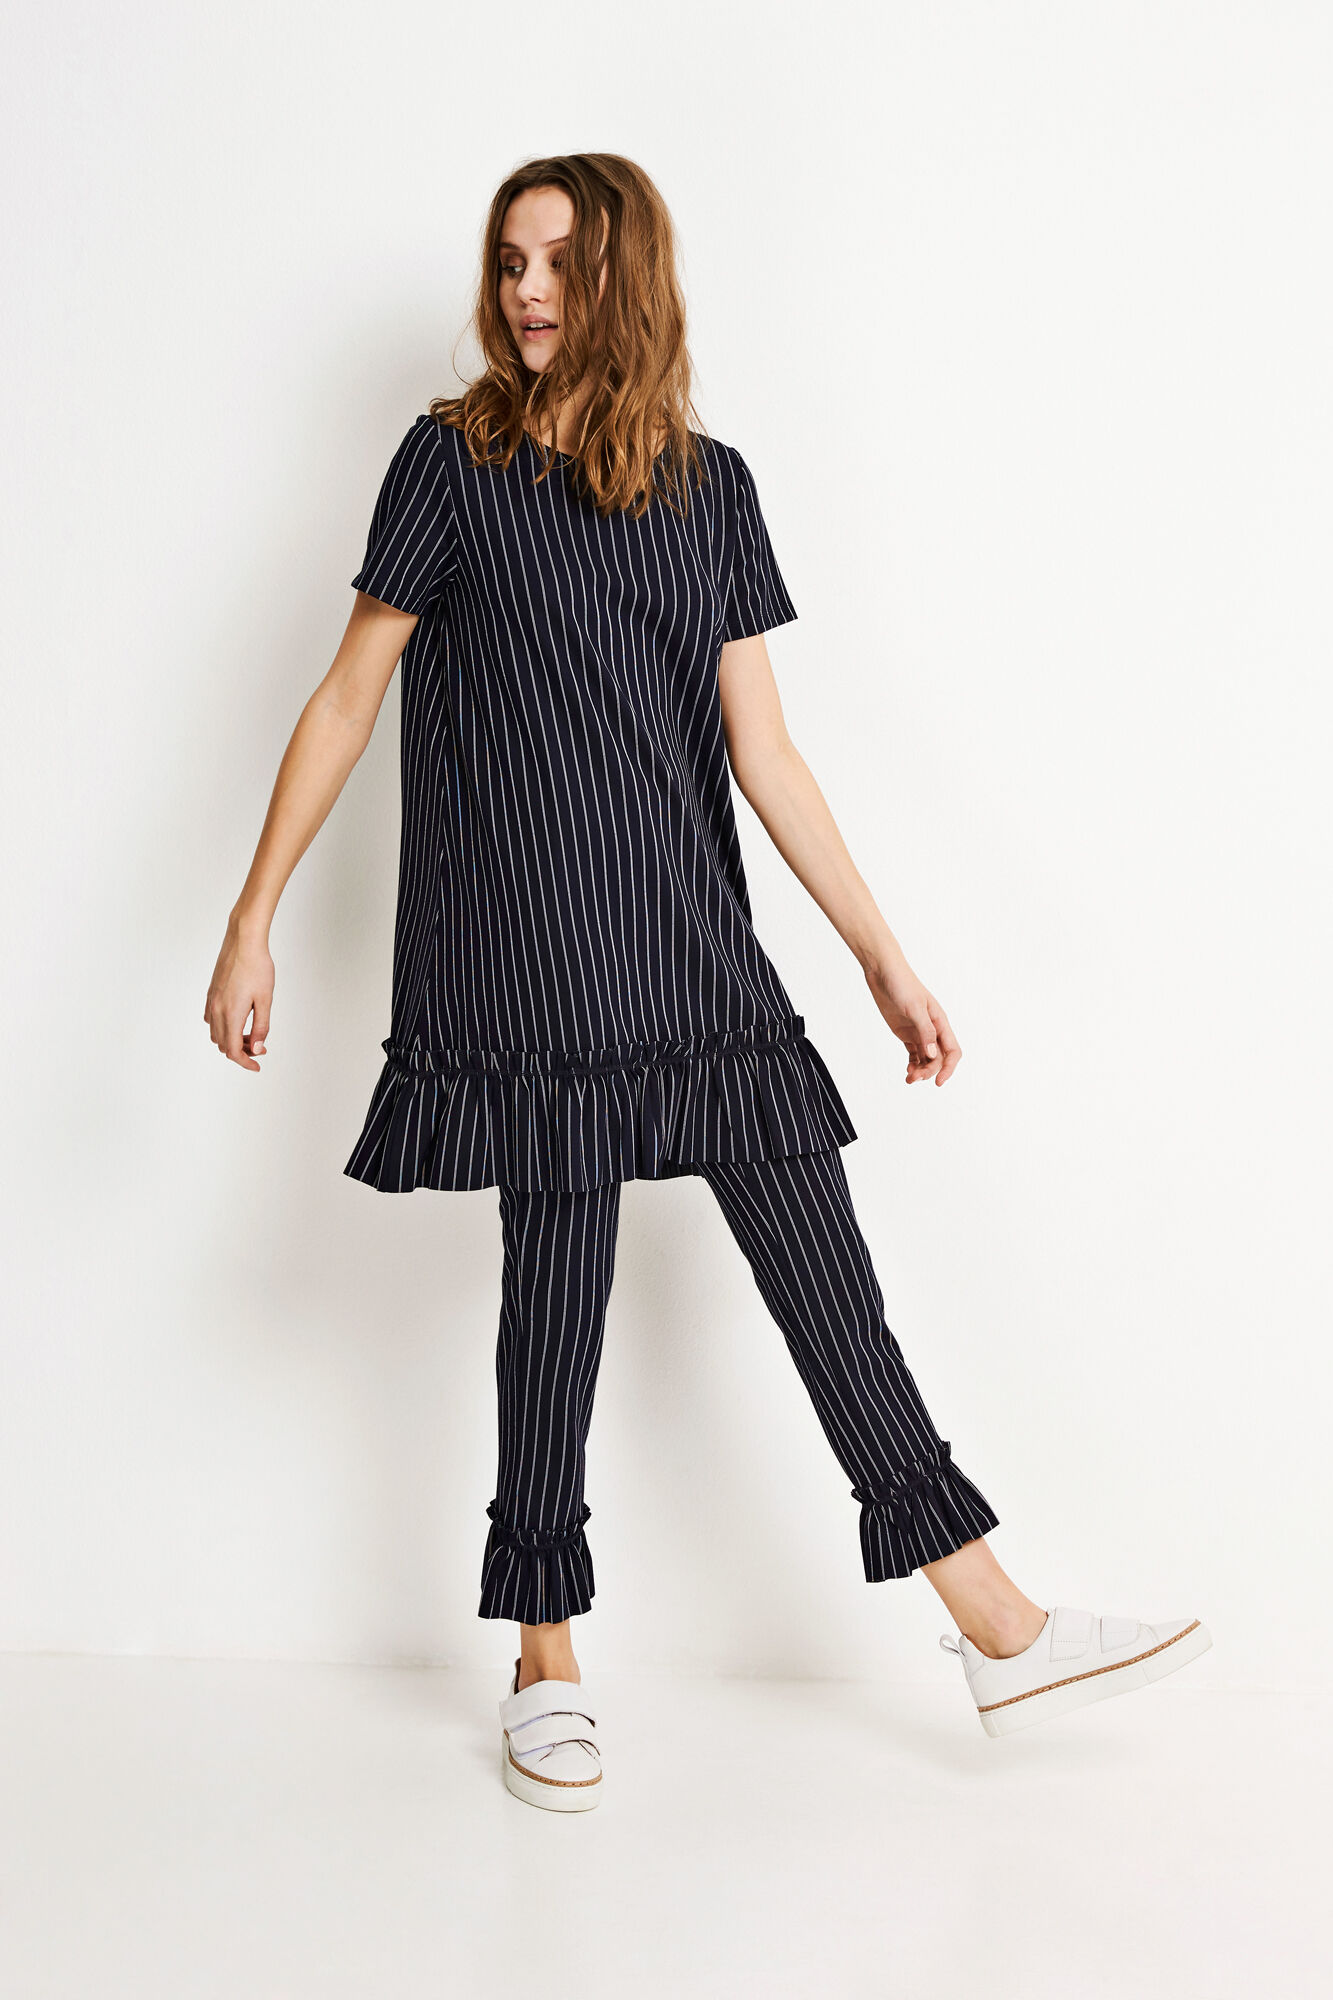 ENTOFFEE SS DRESS 5957, NAVY PINSTRIPE